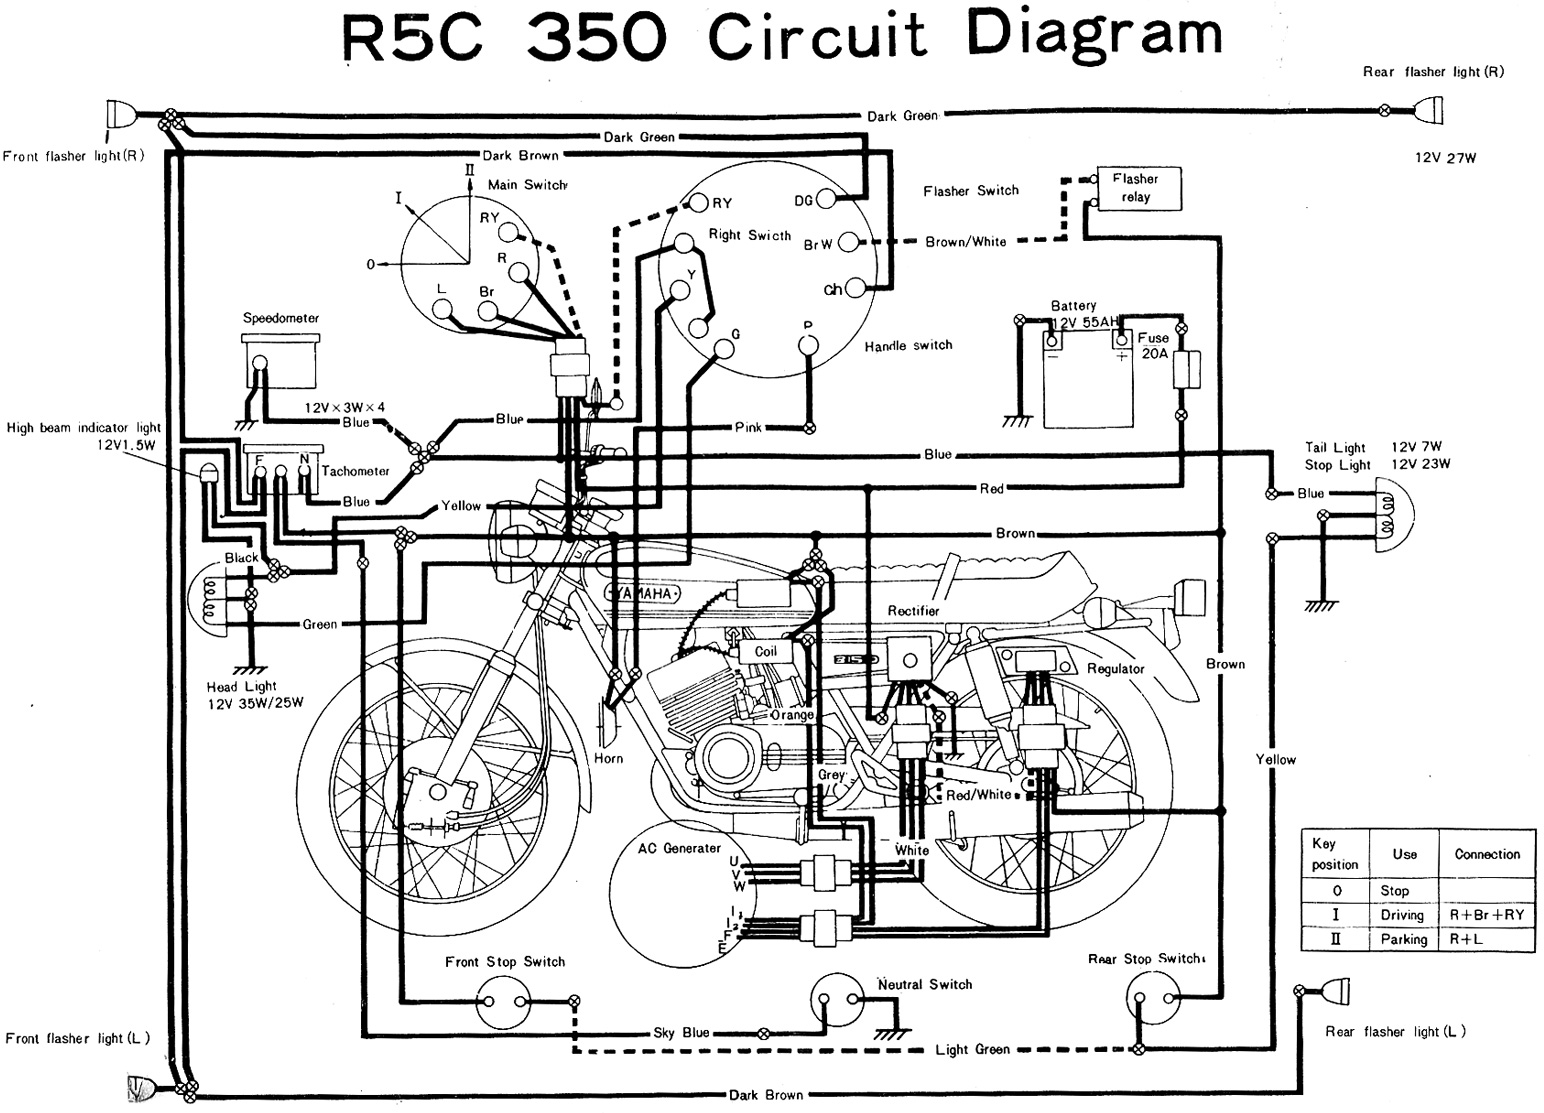 #comments Yamahard350r5cwiringdiagram. #comments Yamahard350r5cwiringdiagram. Yamaha. Yamaha It 250 Wiring Diagram At Justdesktopwallpapers.com